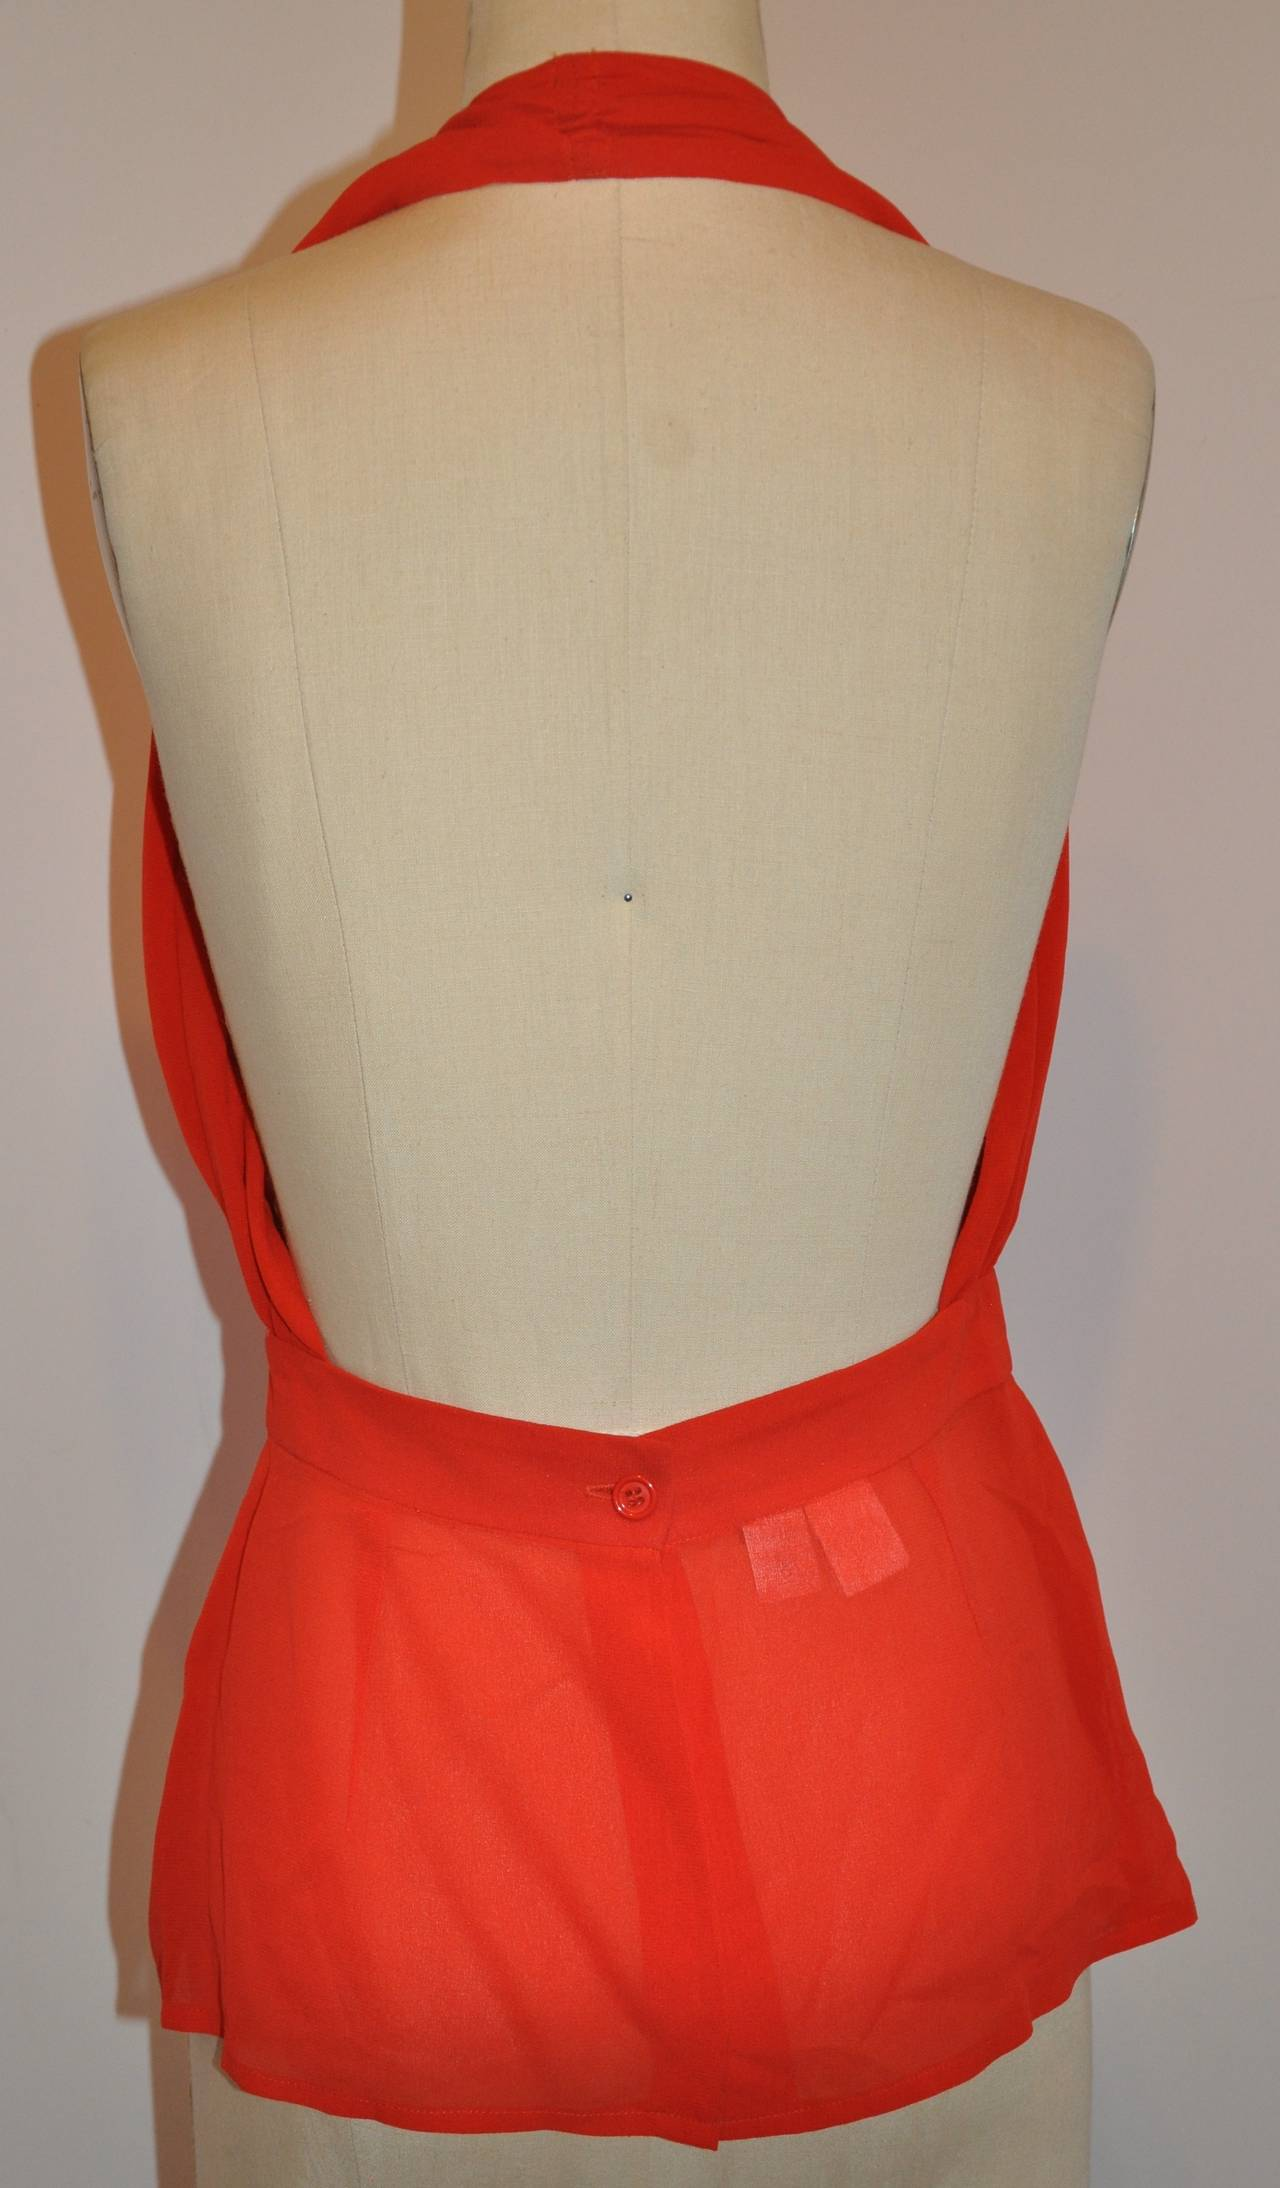 Halston Signature Double-Layered Red Crepe Halter Button Top 3